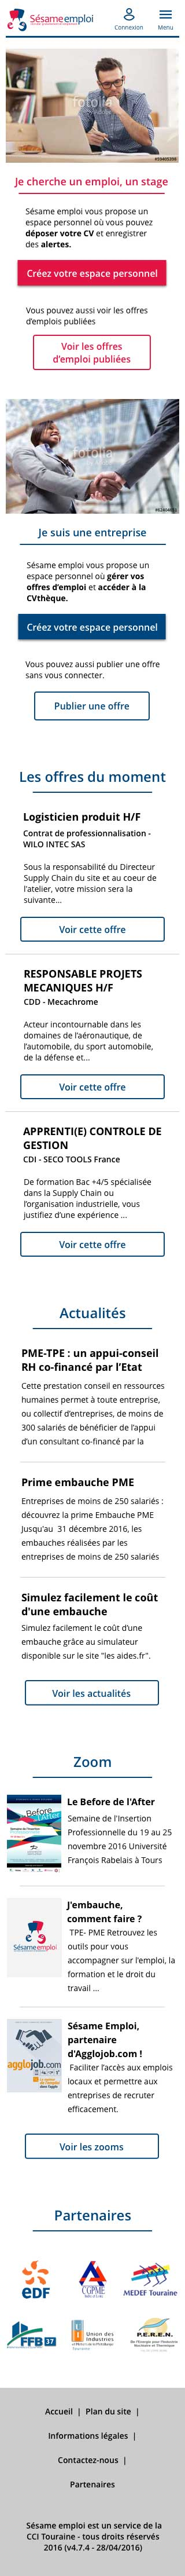 Version Mobile du site Sésame Emploi